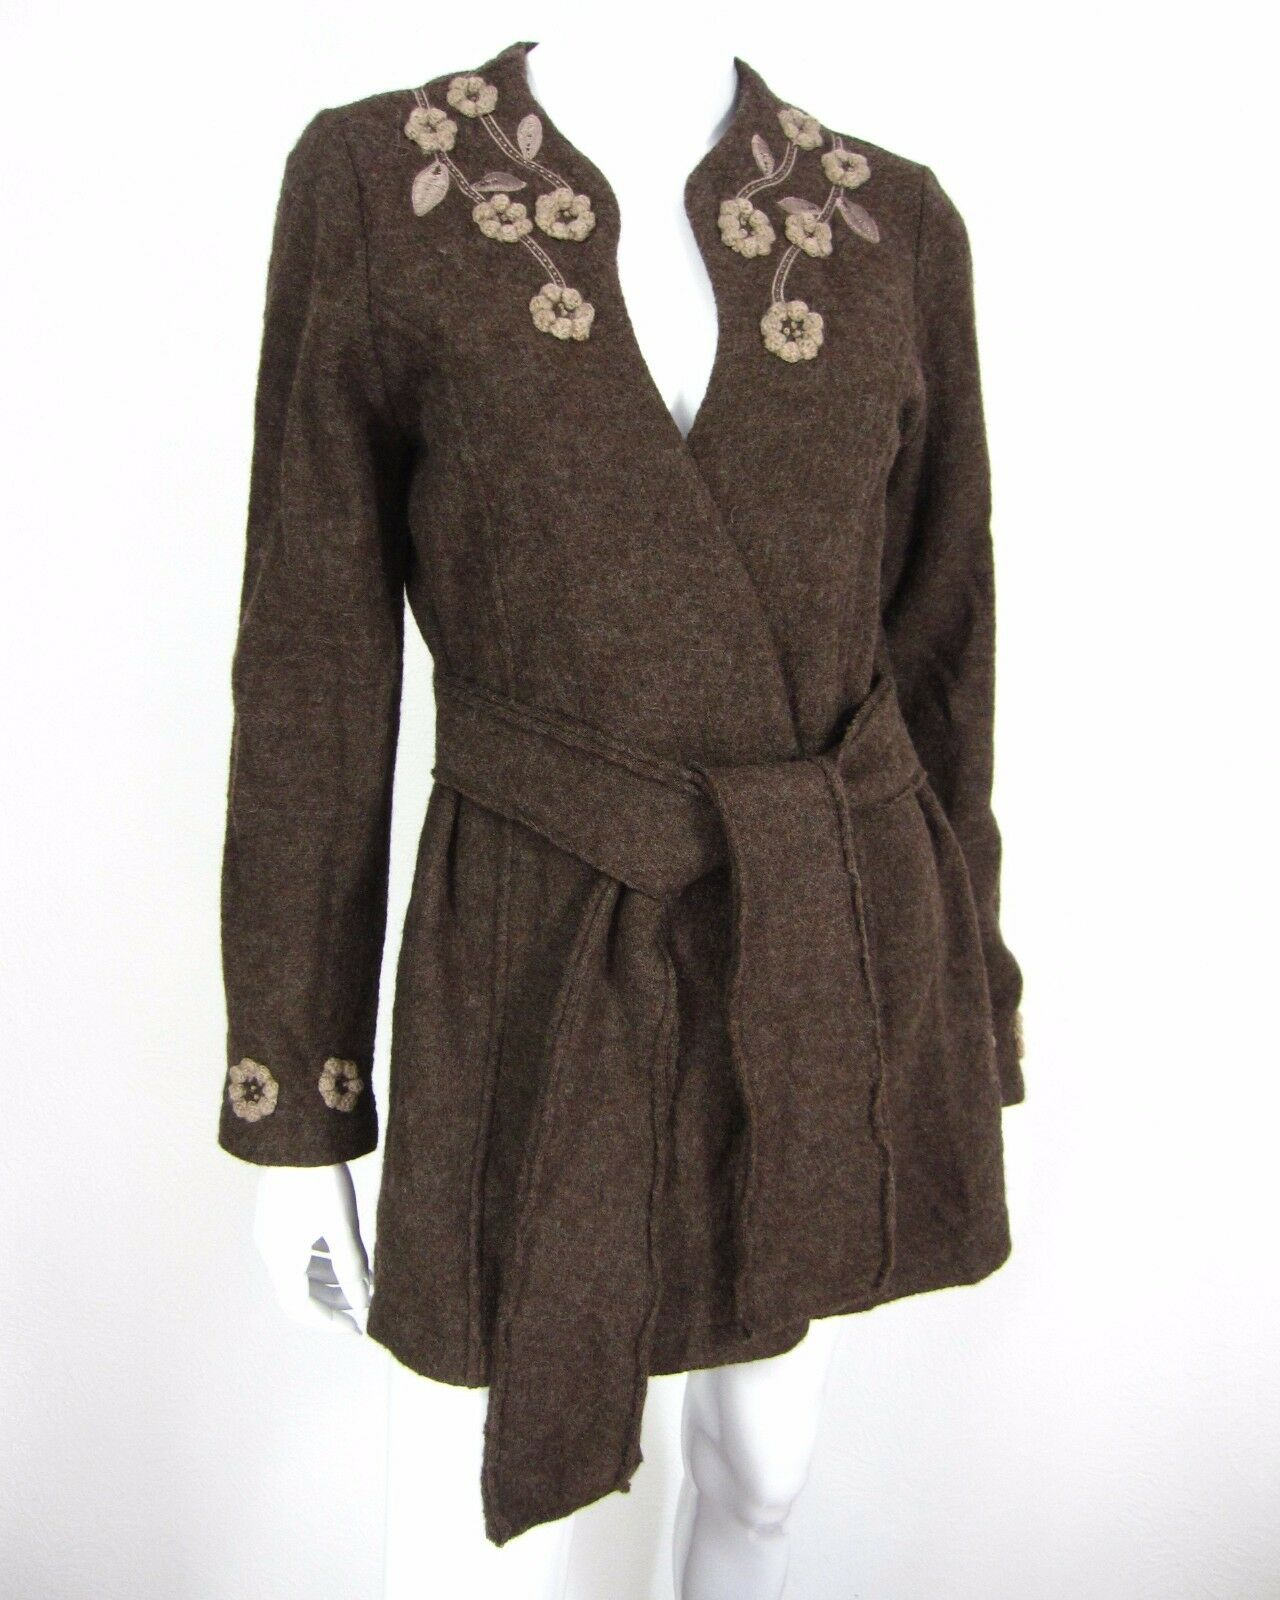 Cynthia Rowley Long Sleeve Wool Belted Cardigan Sweater Size S Small Brown